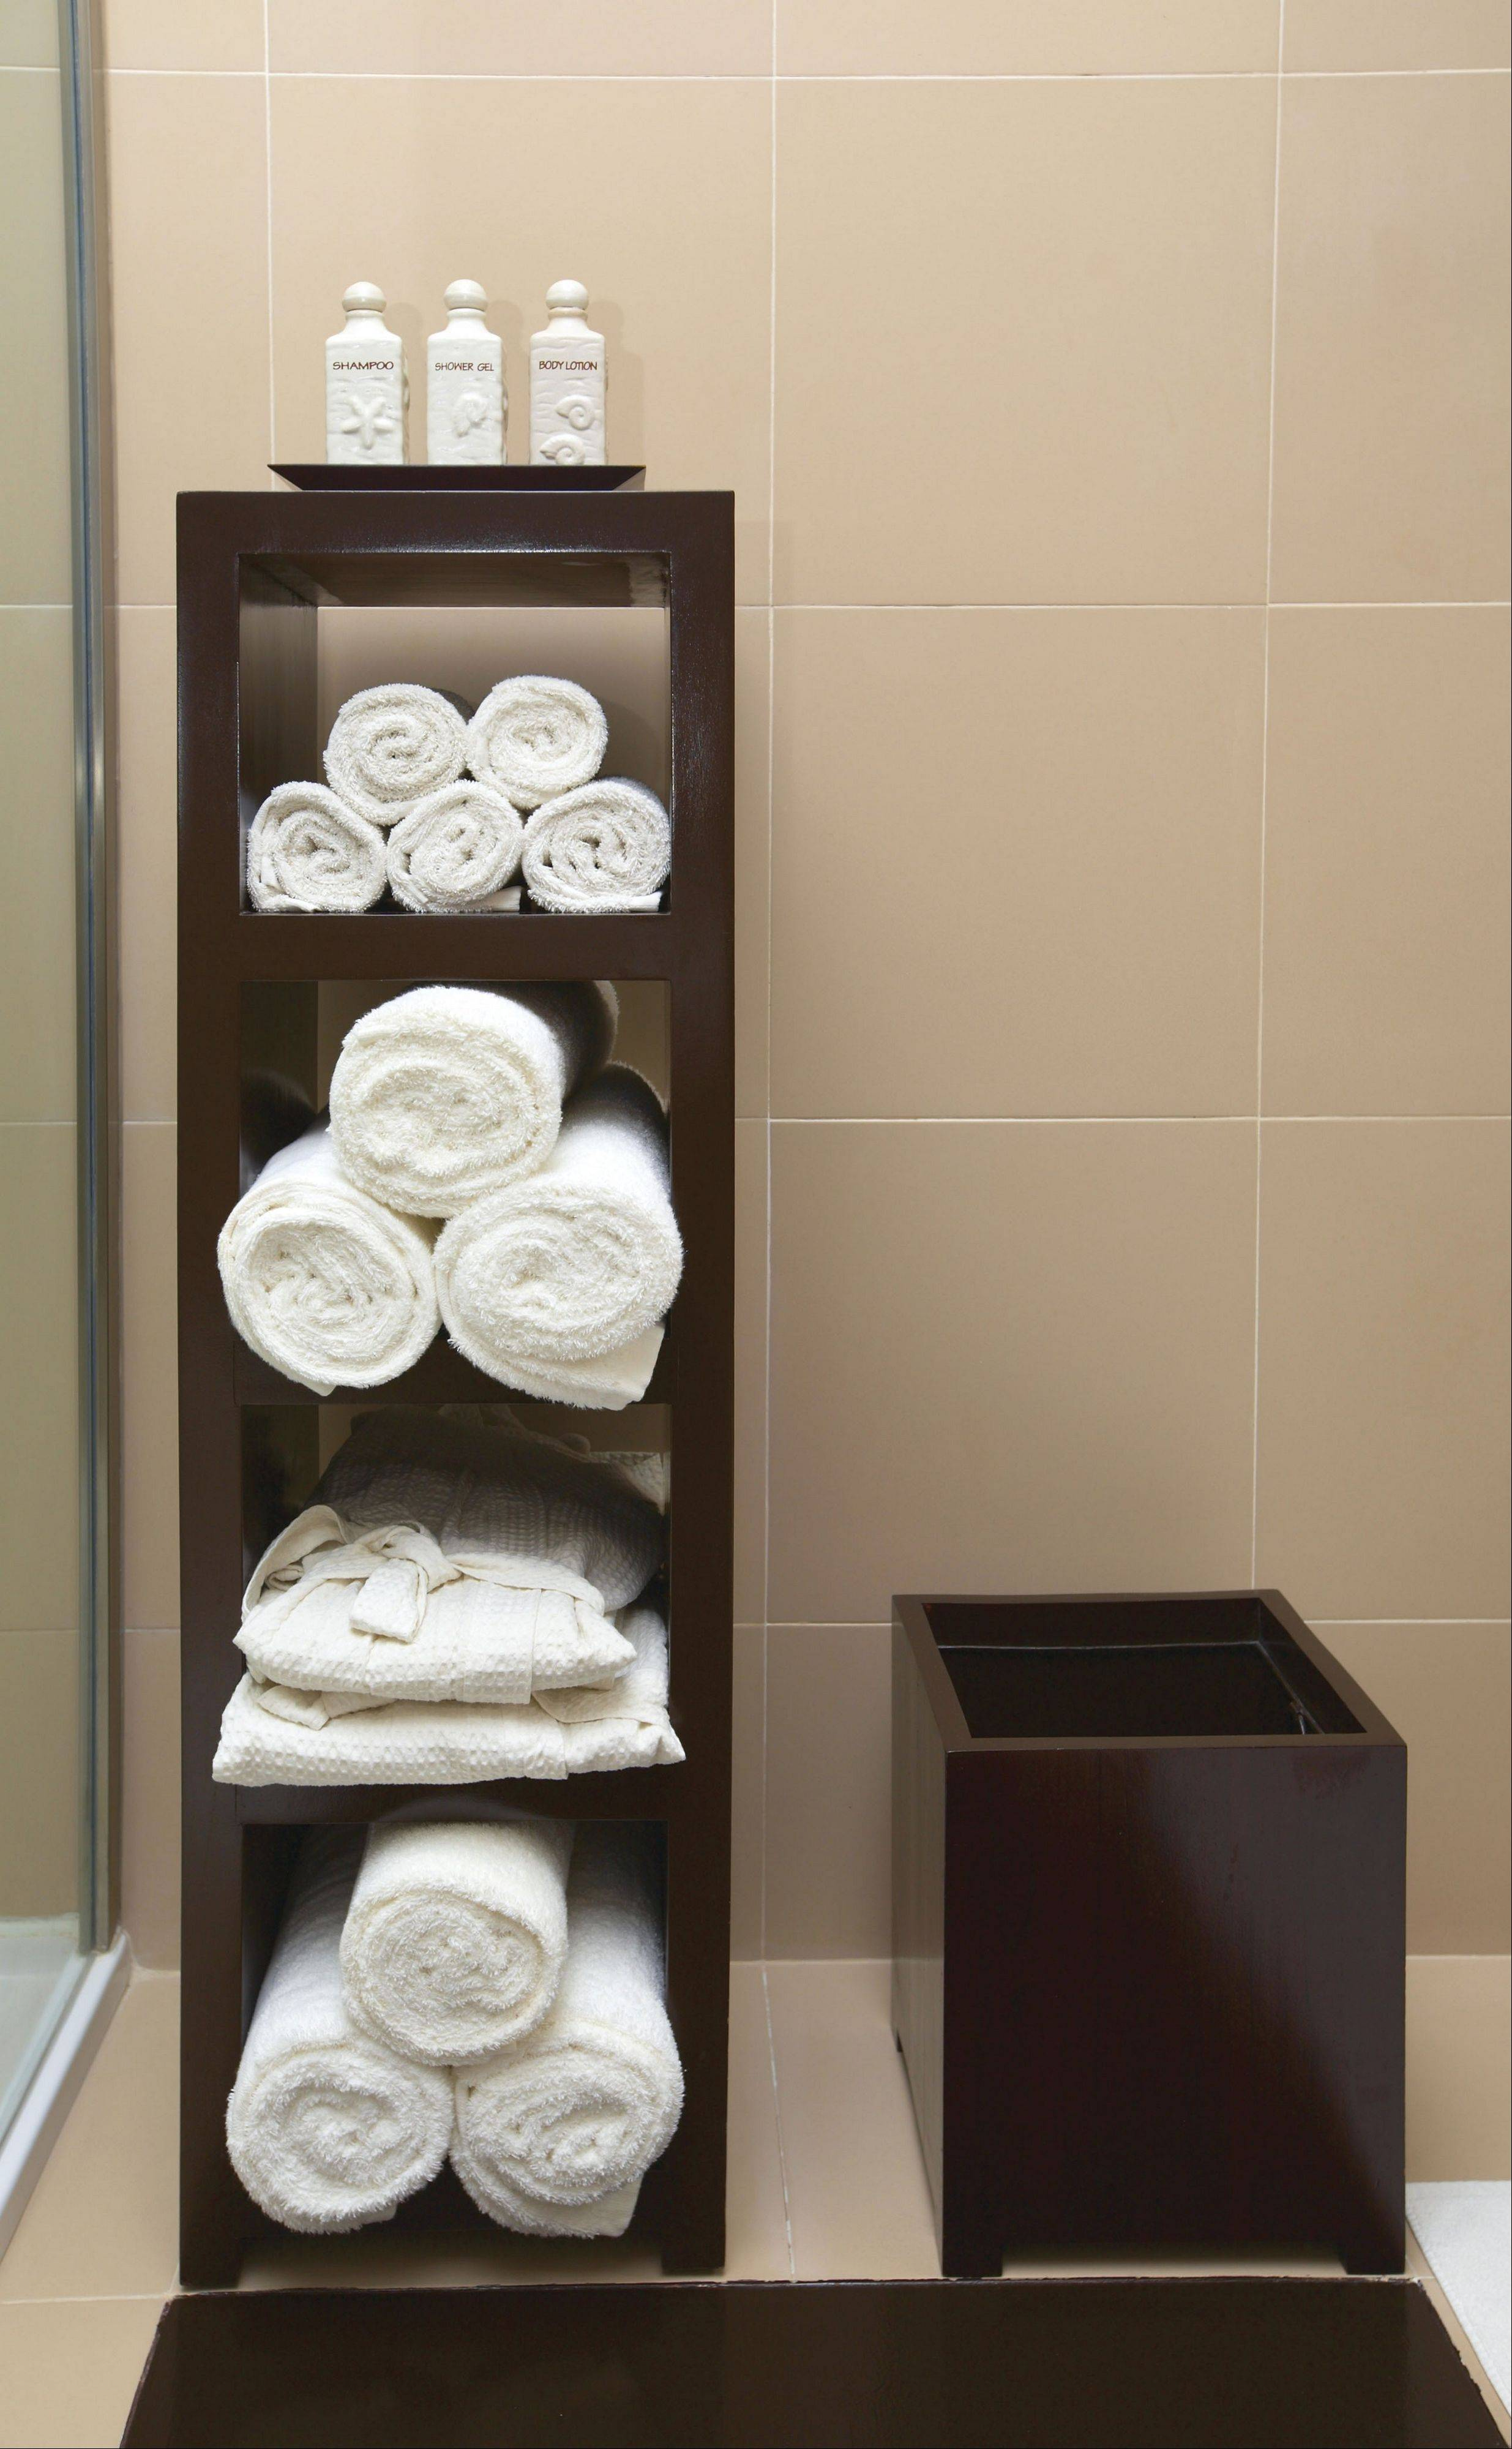 Rolled towels and neatly displayed toiletries cost next to nothing but create a high-end feel.